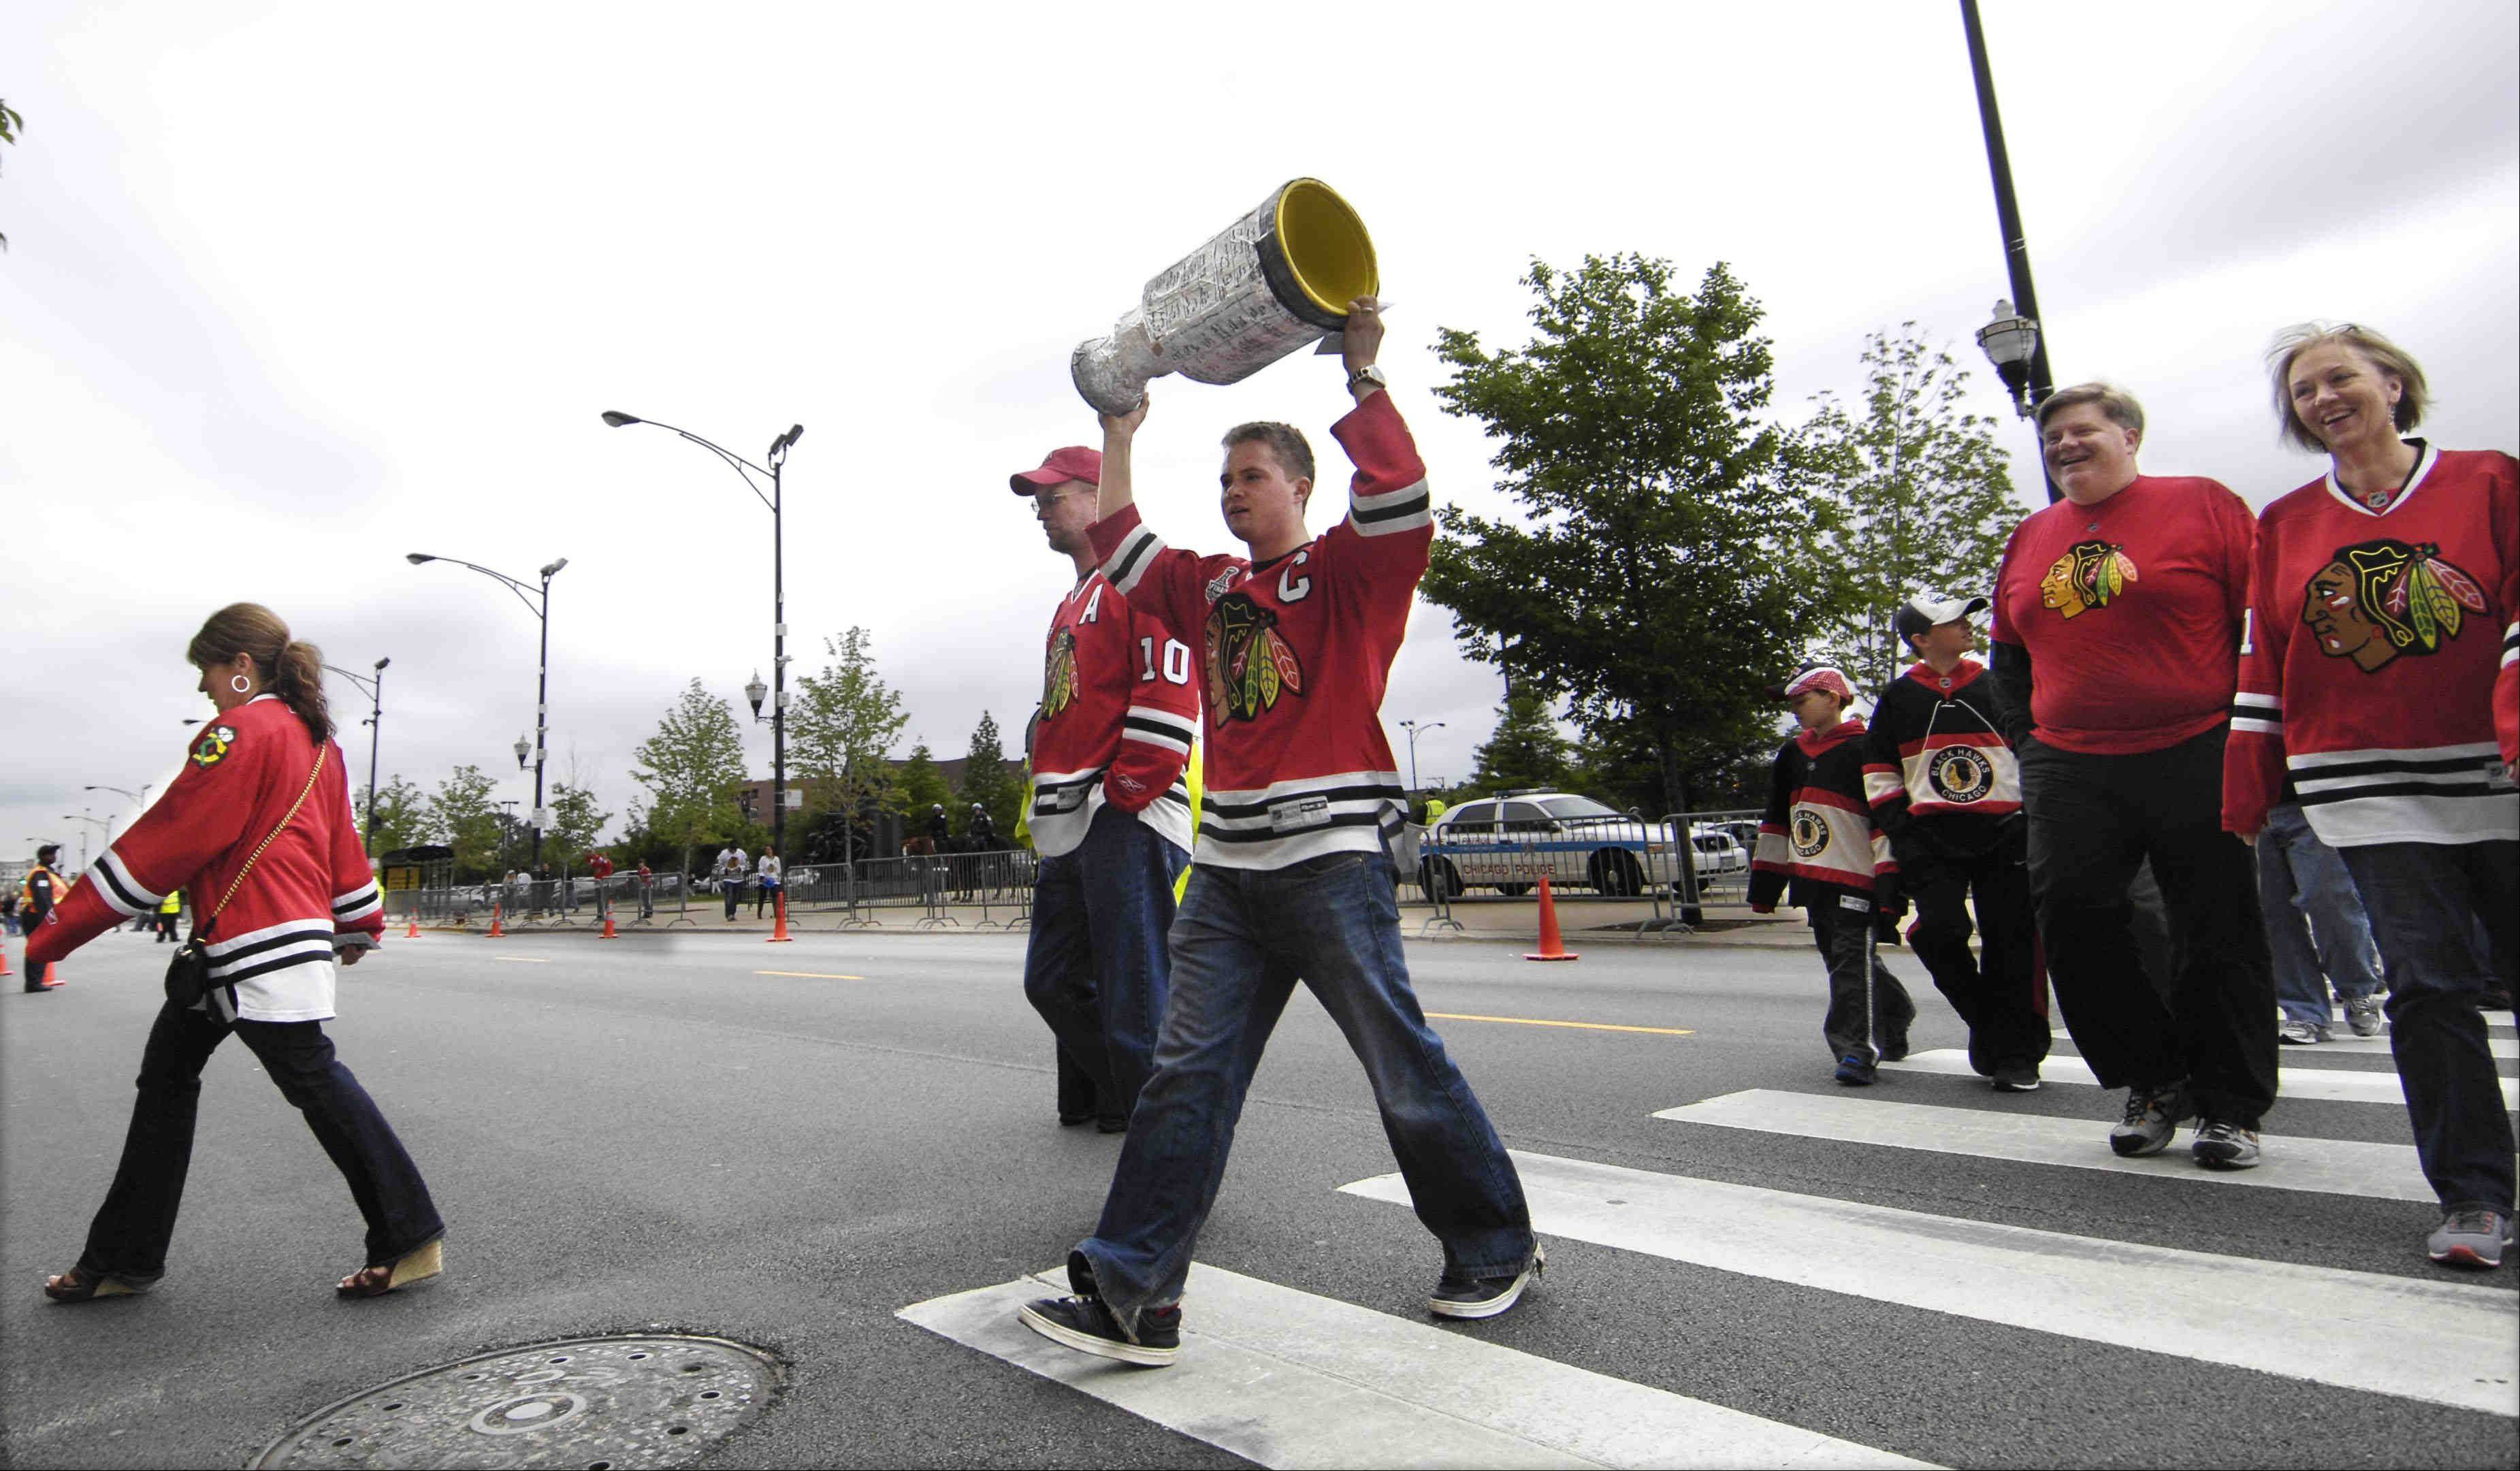 Mike Steele, 19, of Naperville, holds his homemade Stanley Cup aloft as he makes his way across Madison Avenue on his way to game 2 of the NHL Western Conference finals between the Chicago Blackhawks and Los Angeles Kings at the United Center Sunday night in Chicago.